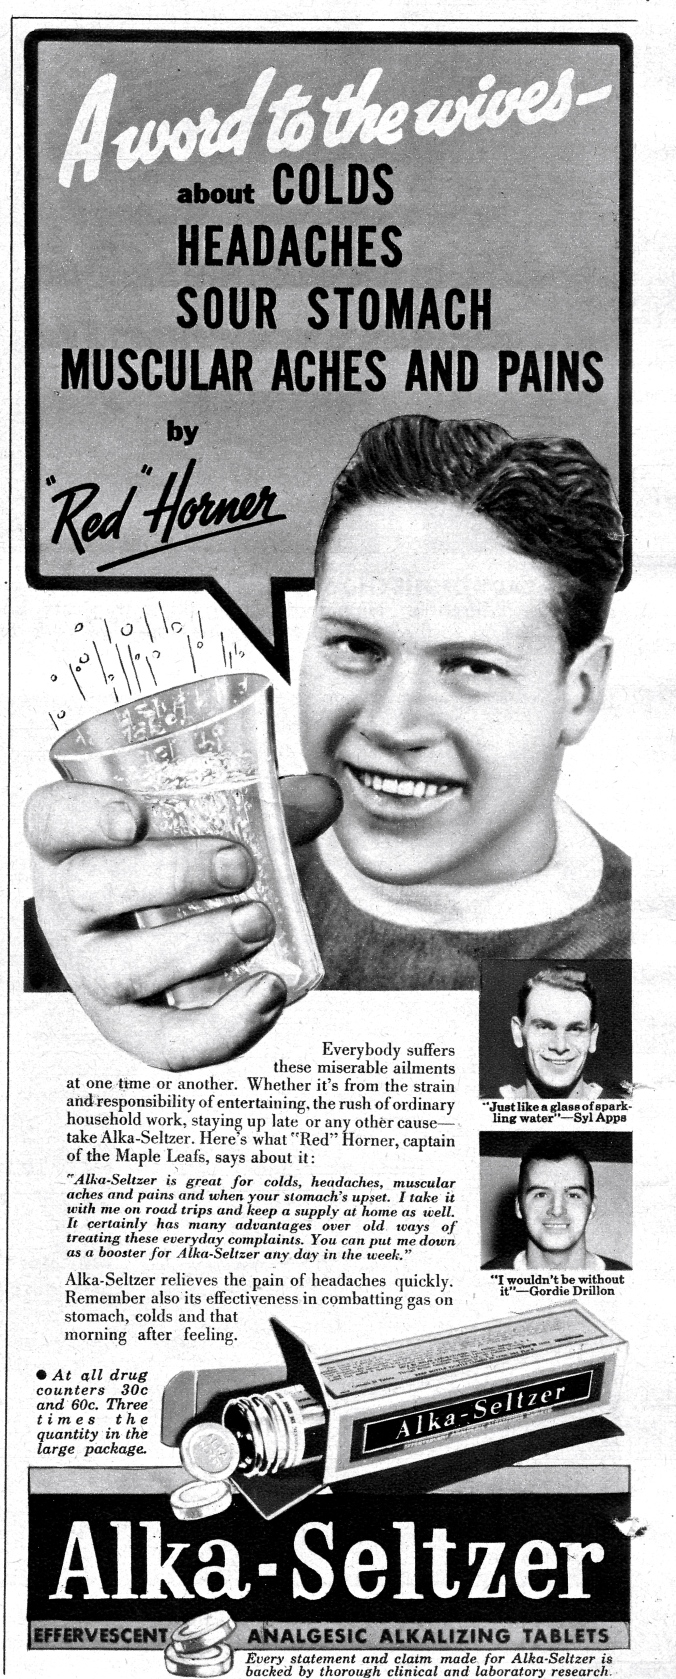 Home Or Away: In a newspaper dating to Januray of 1940, Maple Leafs captain Red Horner suggests you take Alka-Seltzer, any day of the week, whether you're hockey-playing or under the strain of ordinary household work.